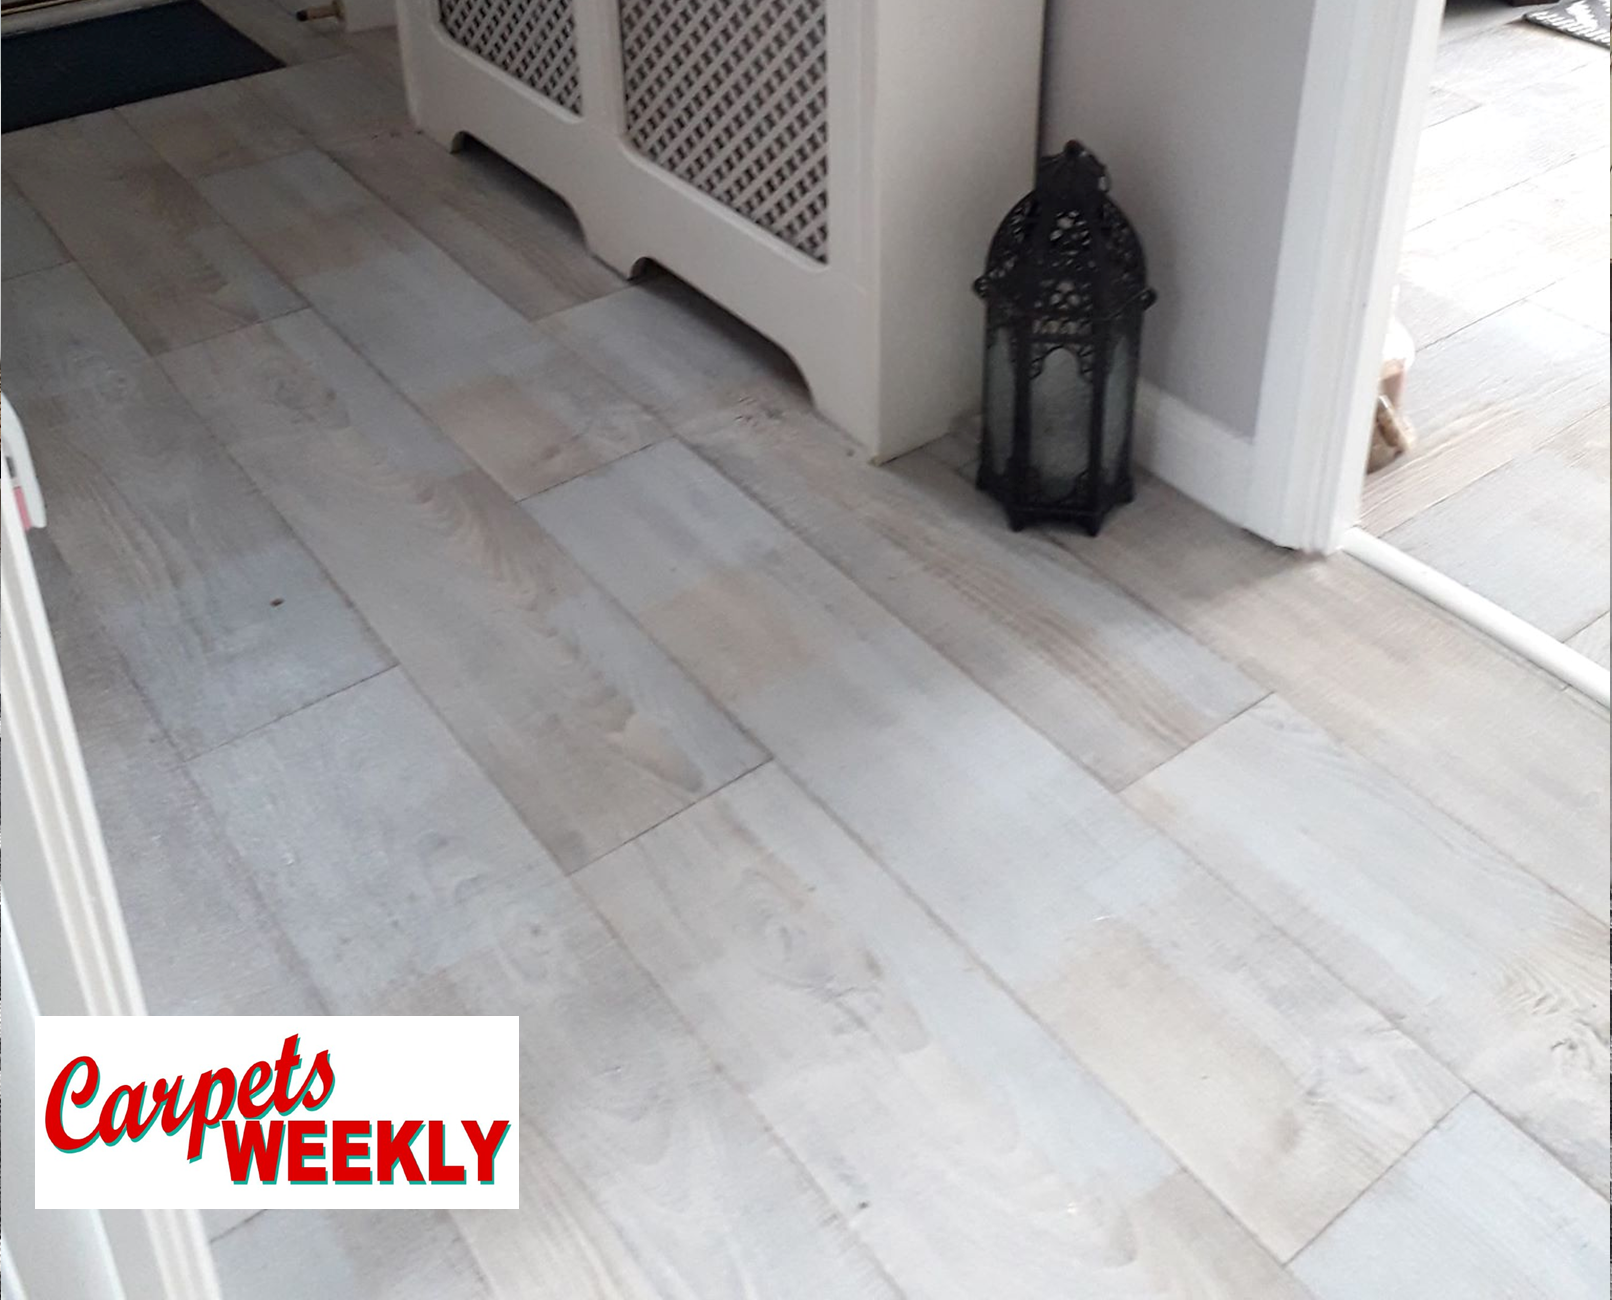 Carpets Weekly Everest Vinyl Flooring Hallway